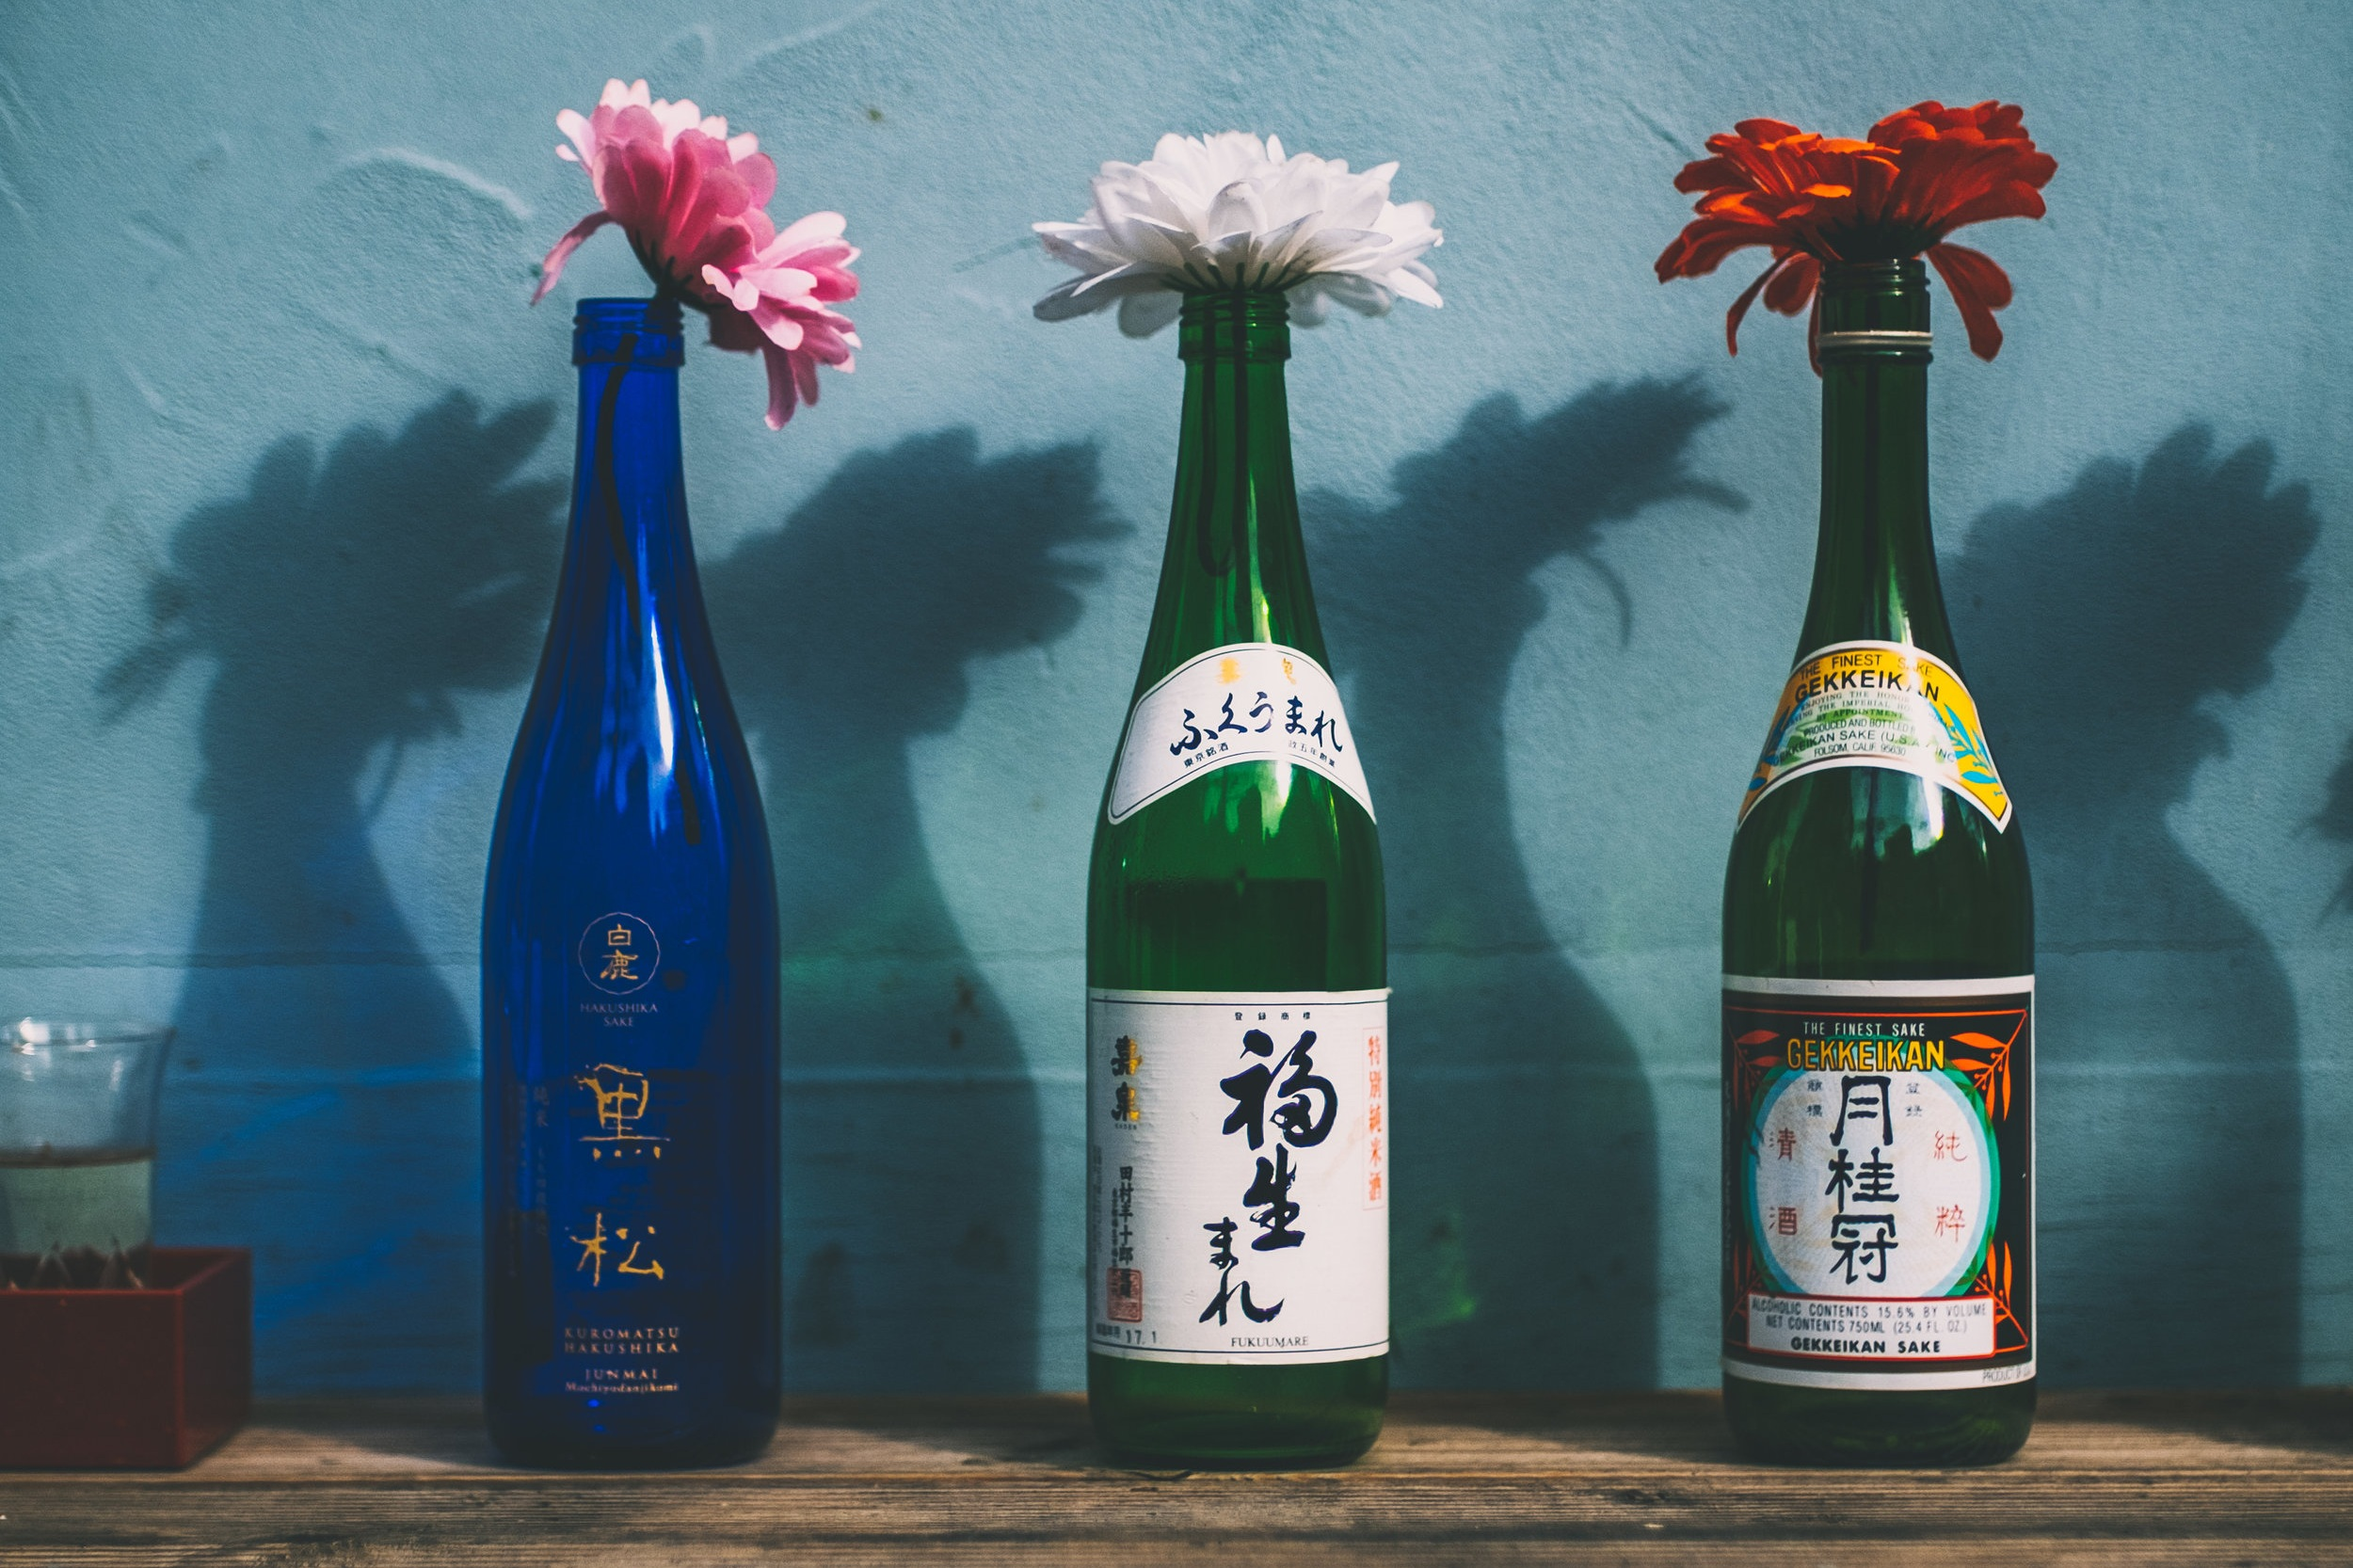 LESS IS MORE UNWINE WITH SAKE - Only Natural IngredientsNo Preservatives - No Tannins - No Sulfites - Low Acidity